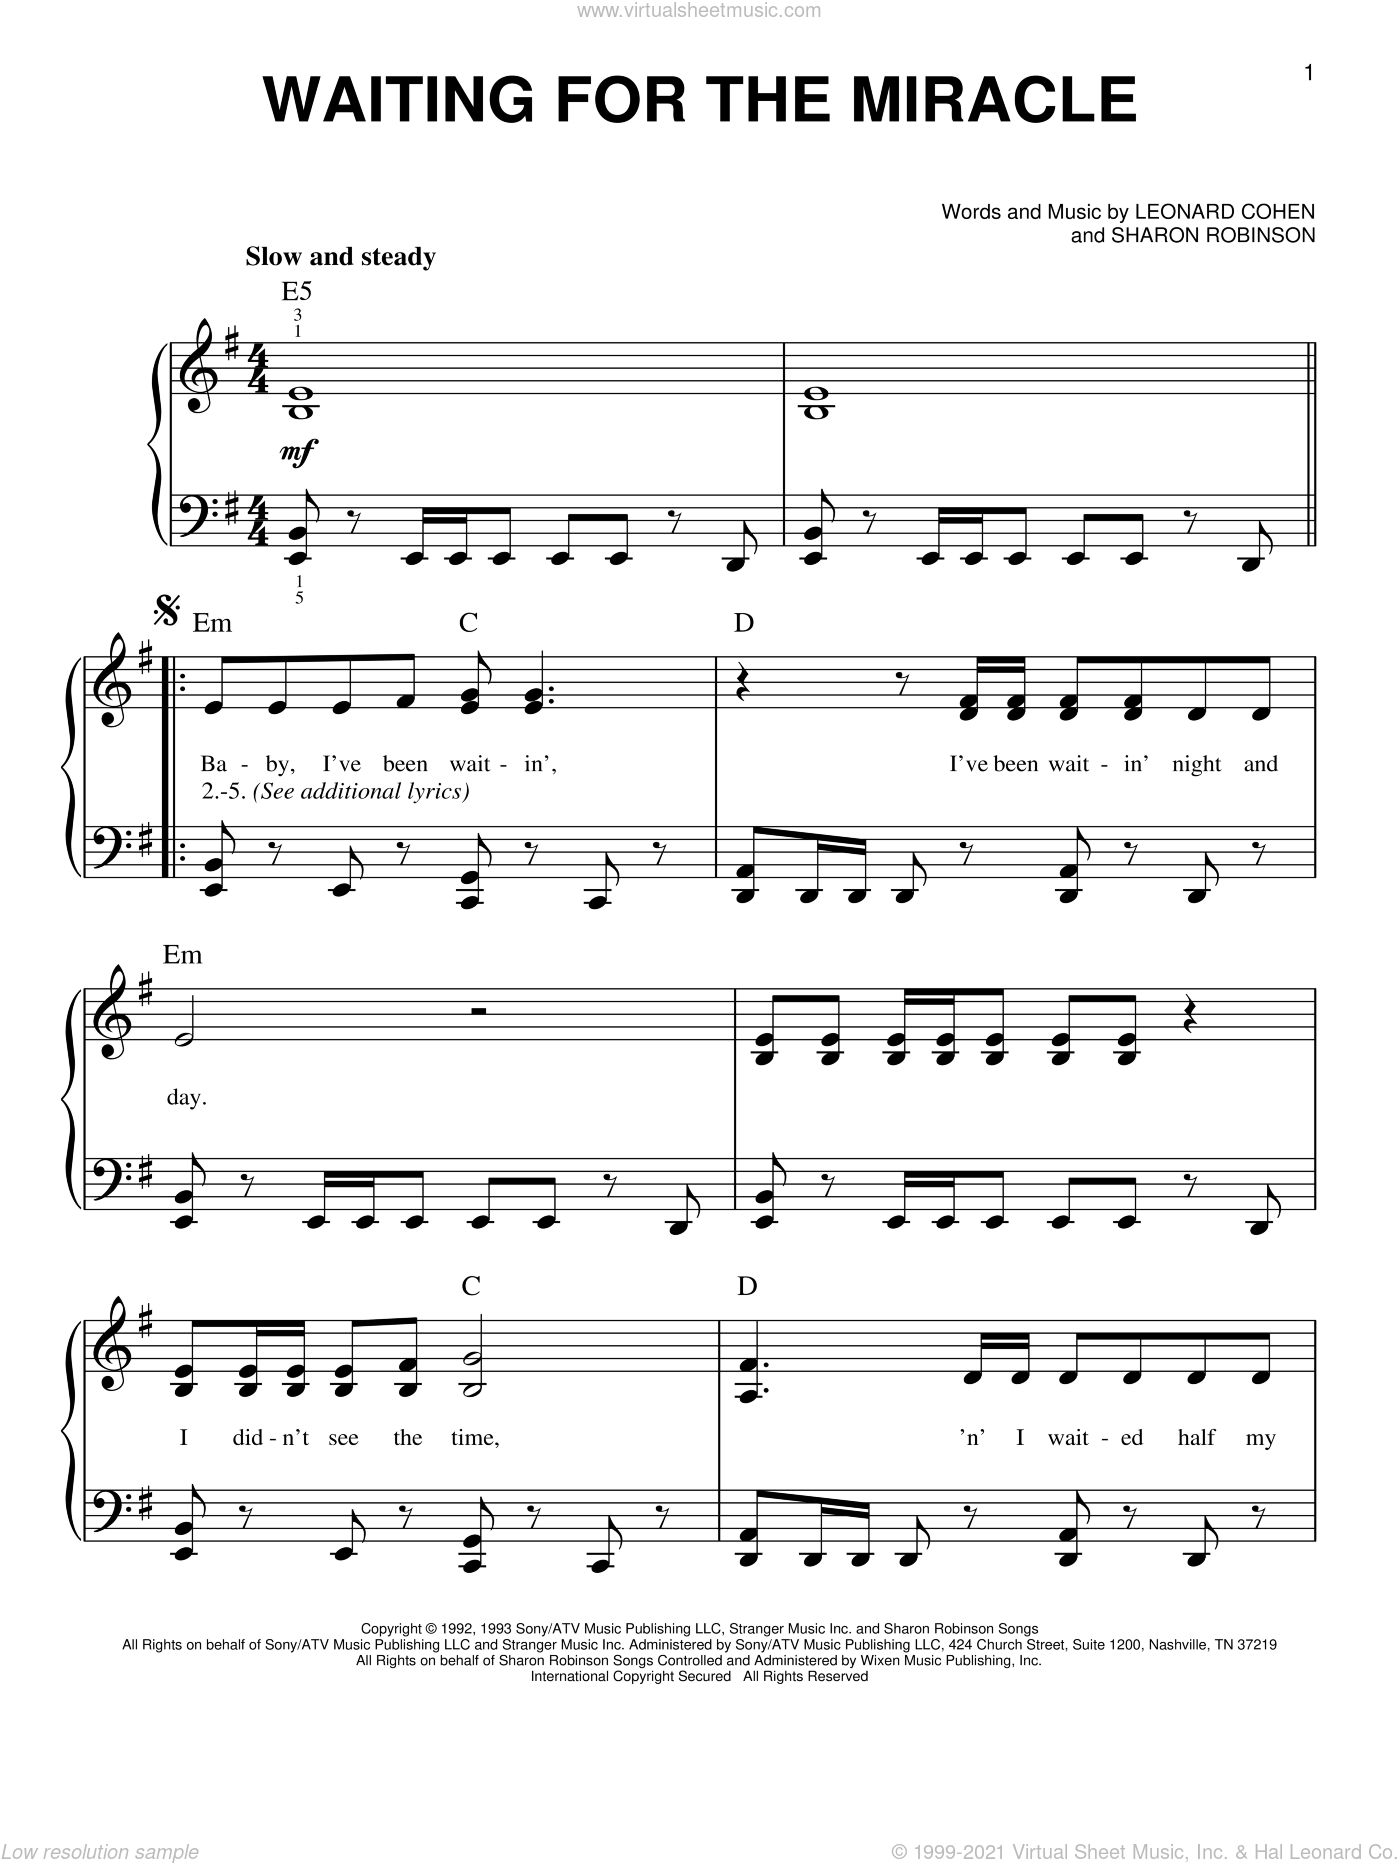 Waiting For The Miracle sheet music for piano solo by Leonard Cohen and Sharon Robinson, easy skill level